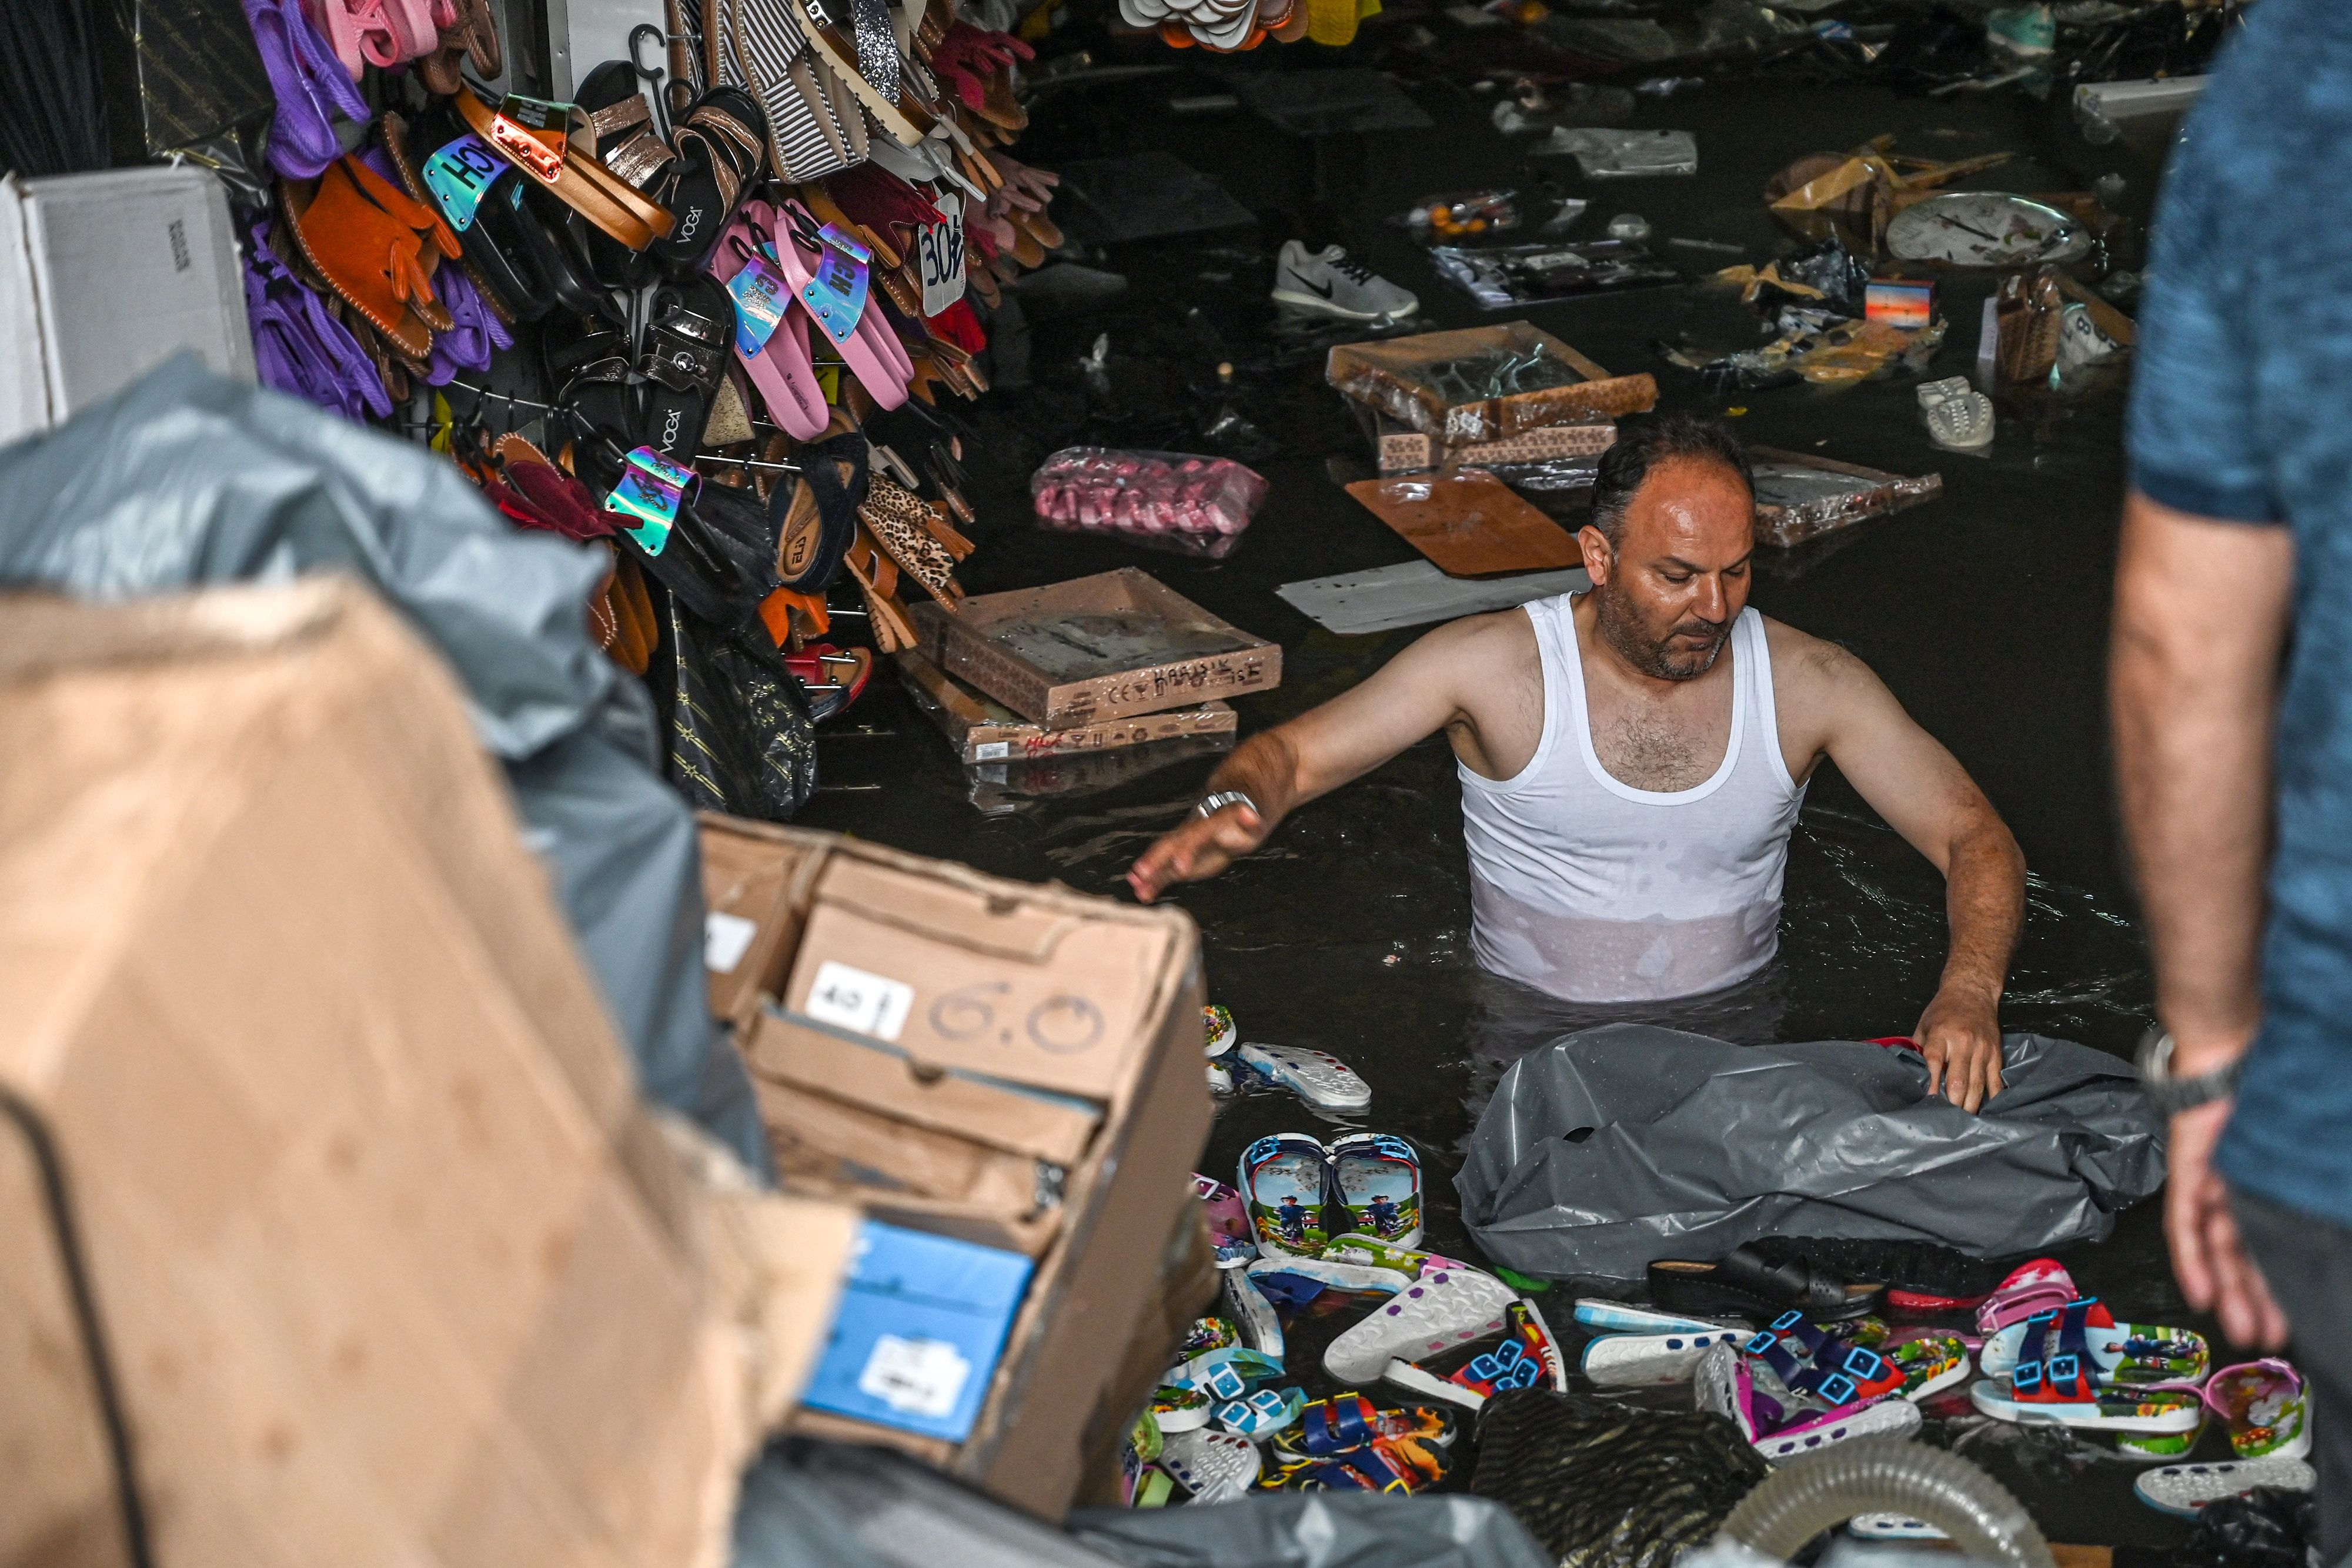 Heavy downpours wreak havoc in Istanbul, flooding historic Grand Bazaar